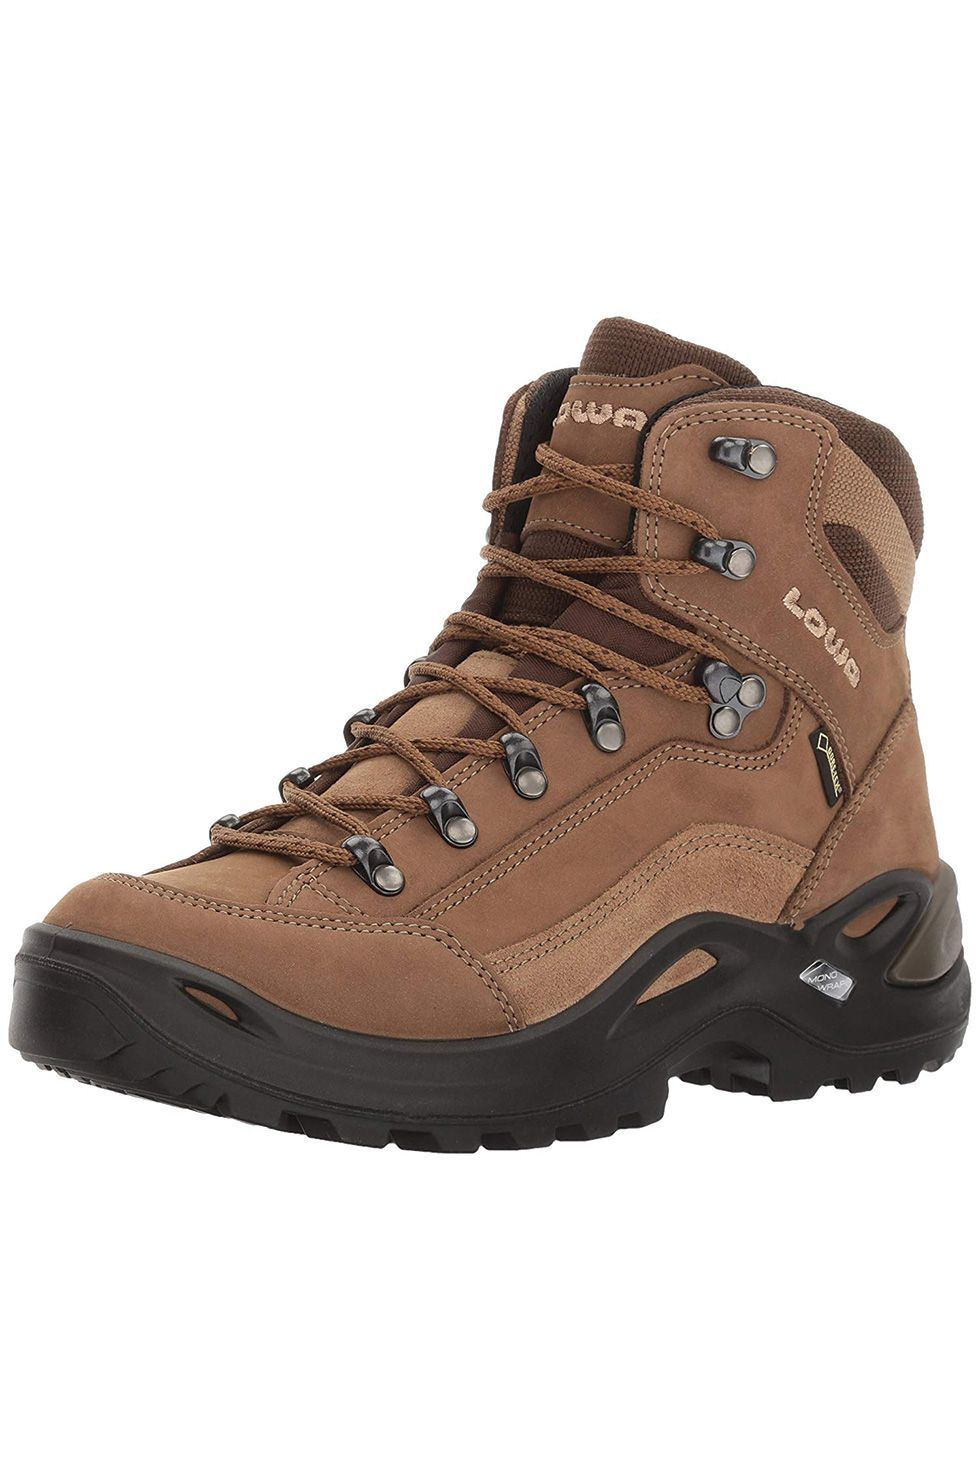 20 Best Hiking Shoes And Boots For Women In 2020